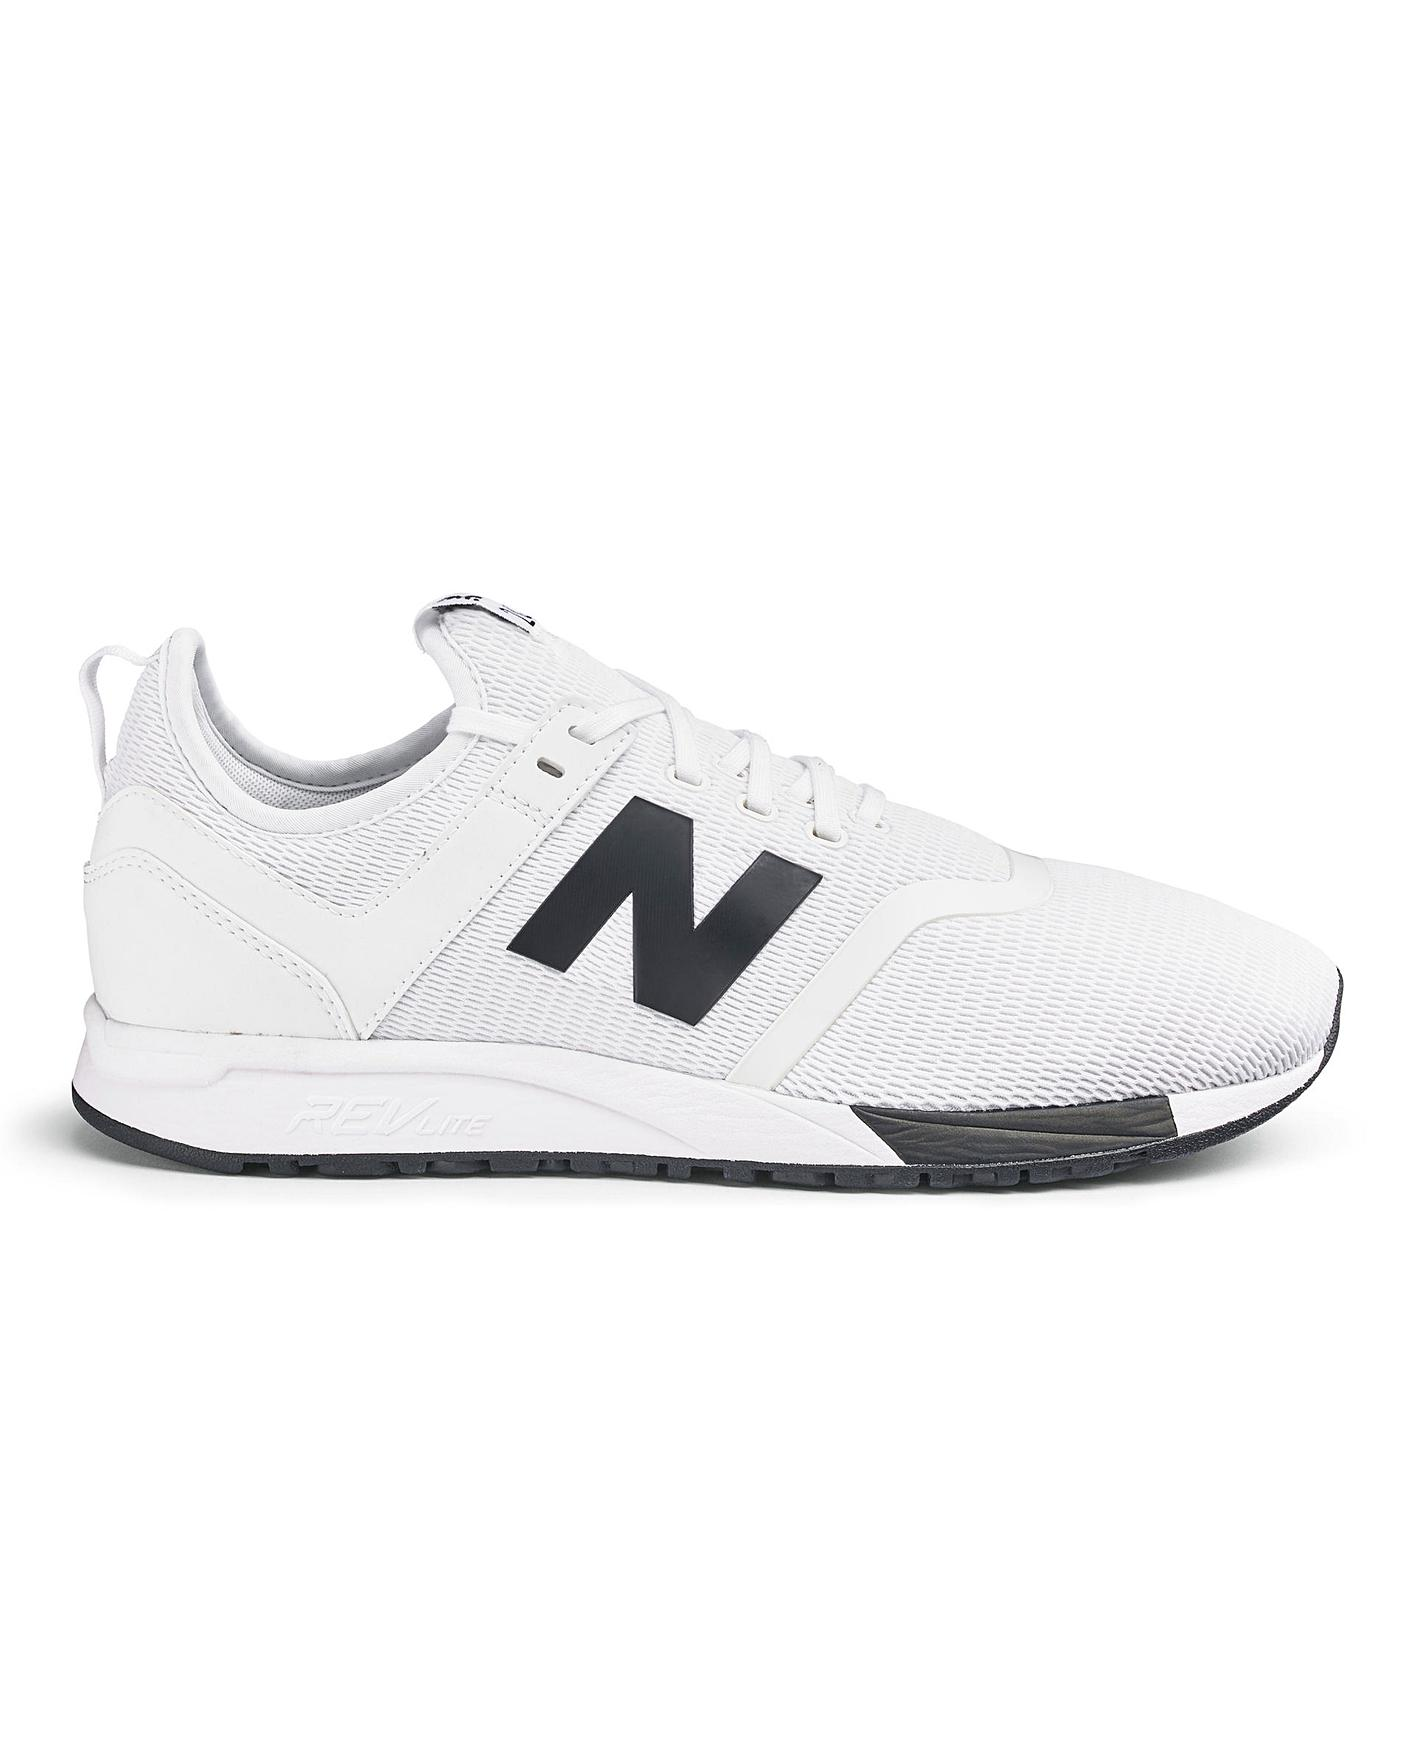 New Balance 247 Trainers | Oxendales